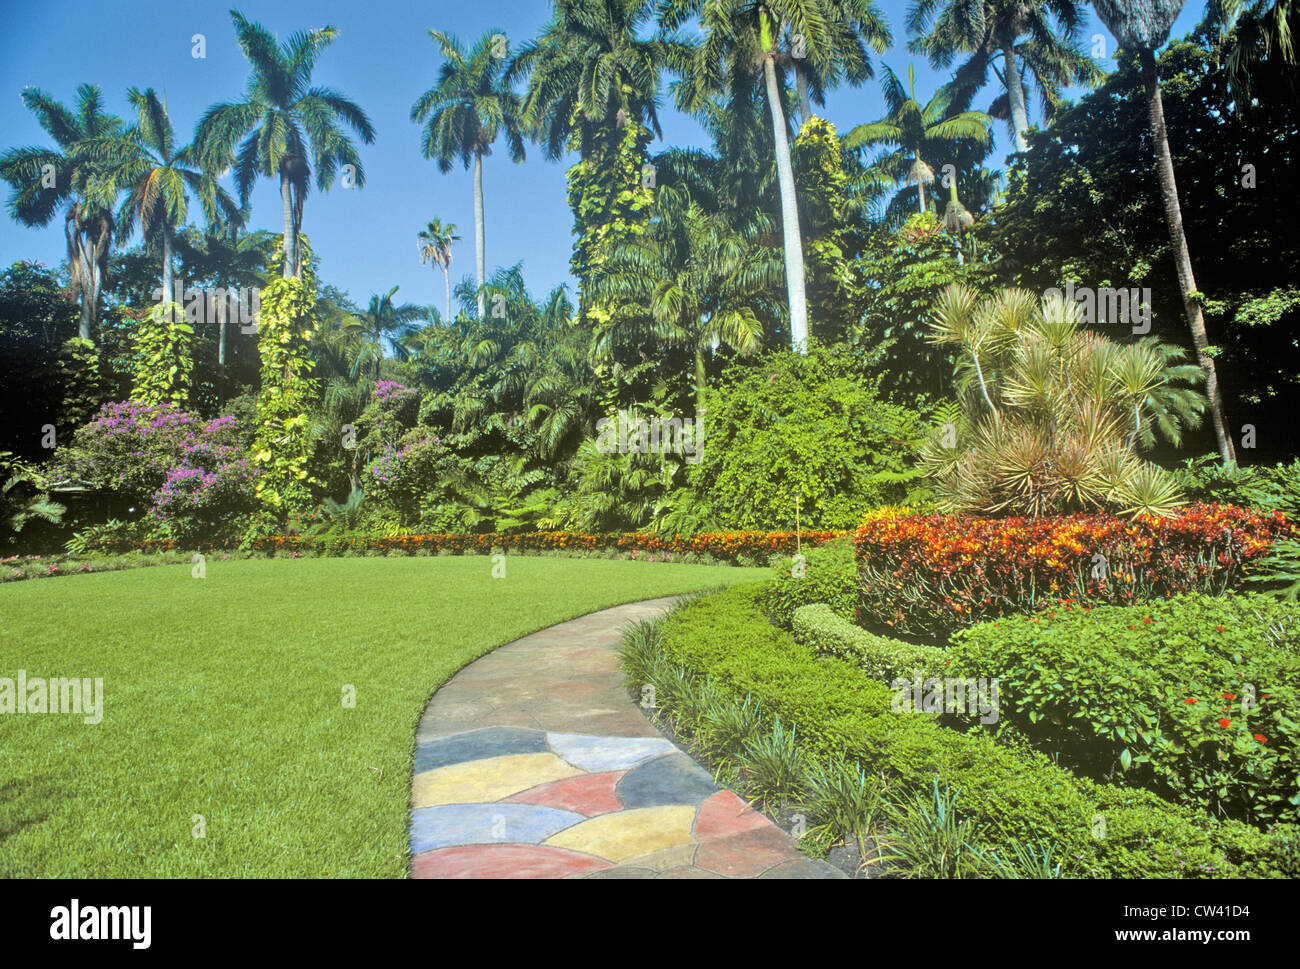 Sunken Gardens Florida 39 S Foremost Botanical Gardens St Petersburg Stock Photo 49876096 Alamy